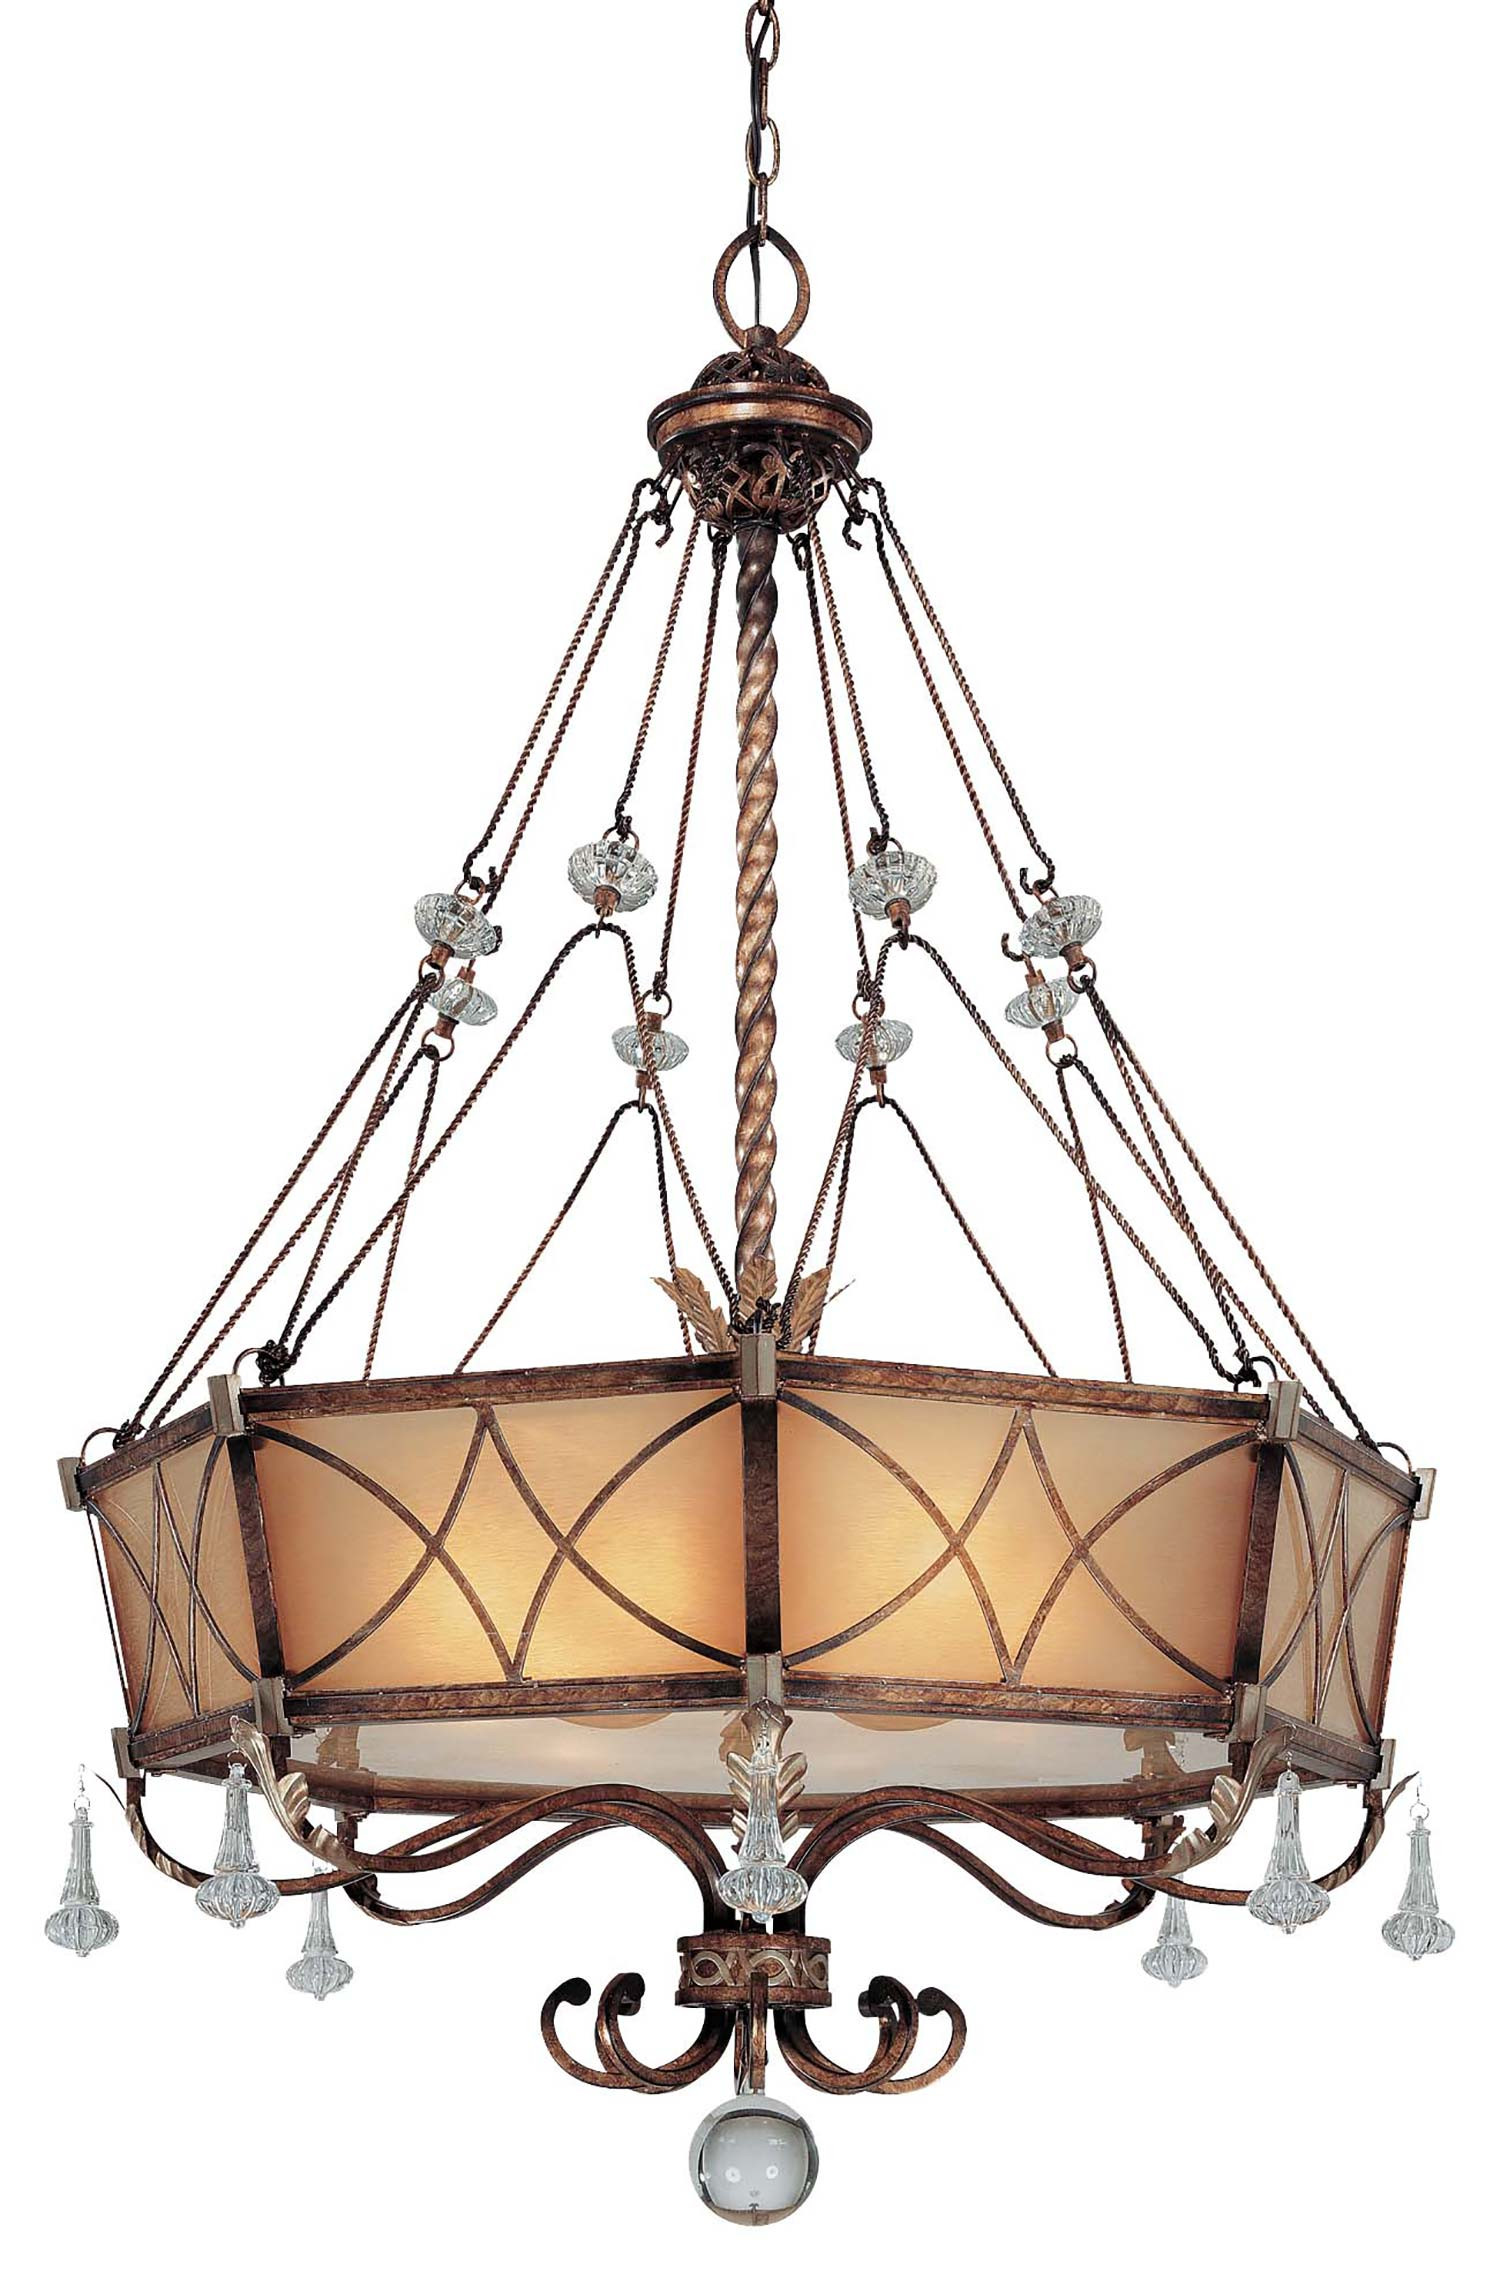 Best ideas about Minka Lavery Lighting . Save or Pin Minka Lavery Lighting Minka Lavery Lighting Aston Court Now.